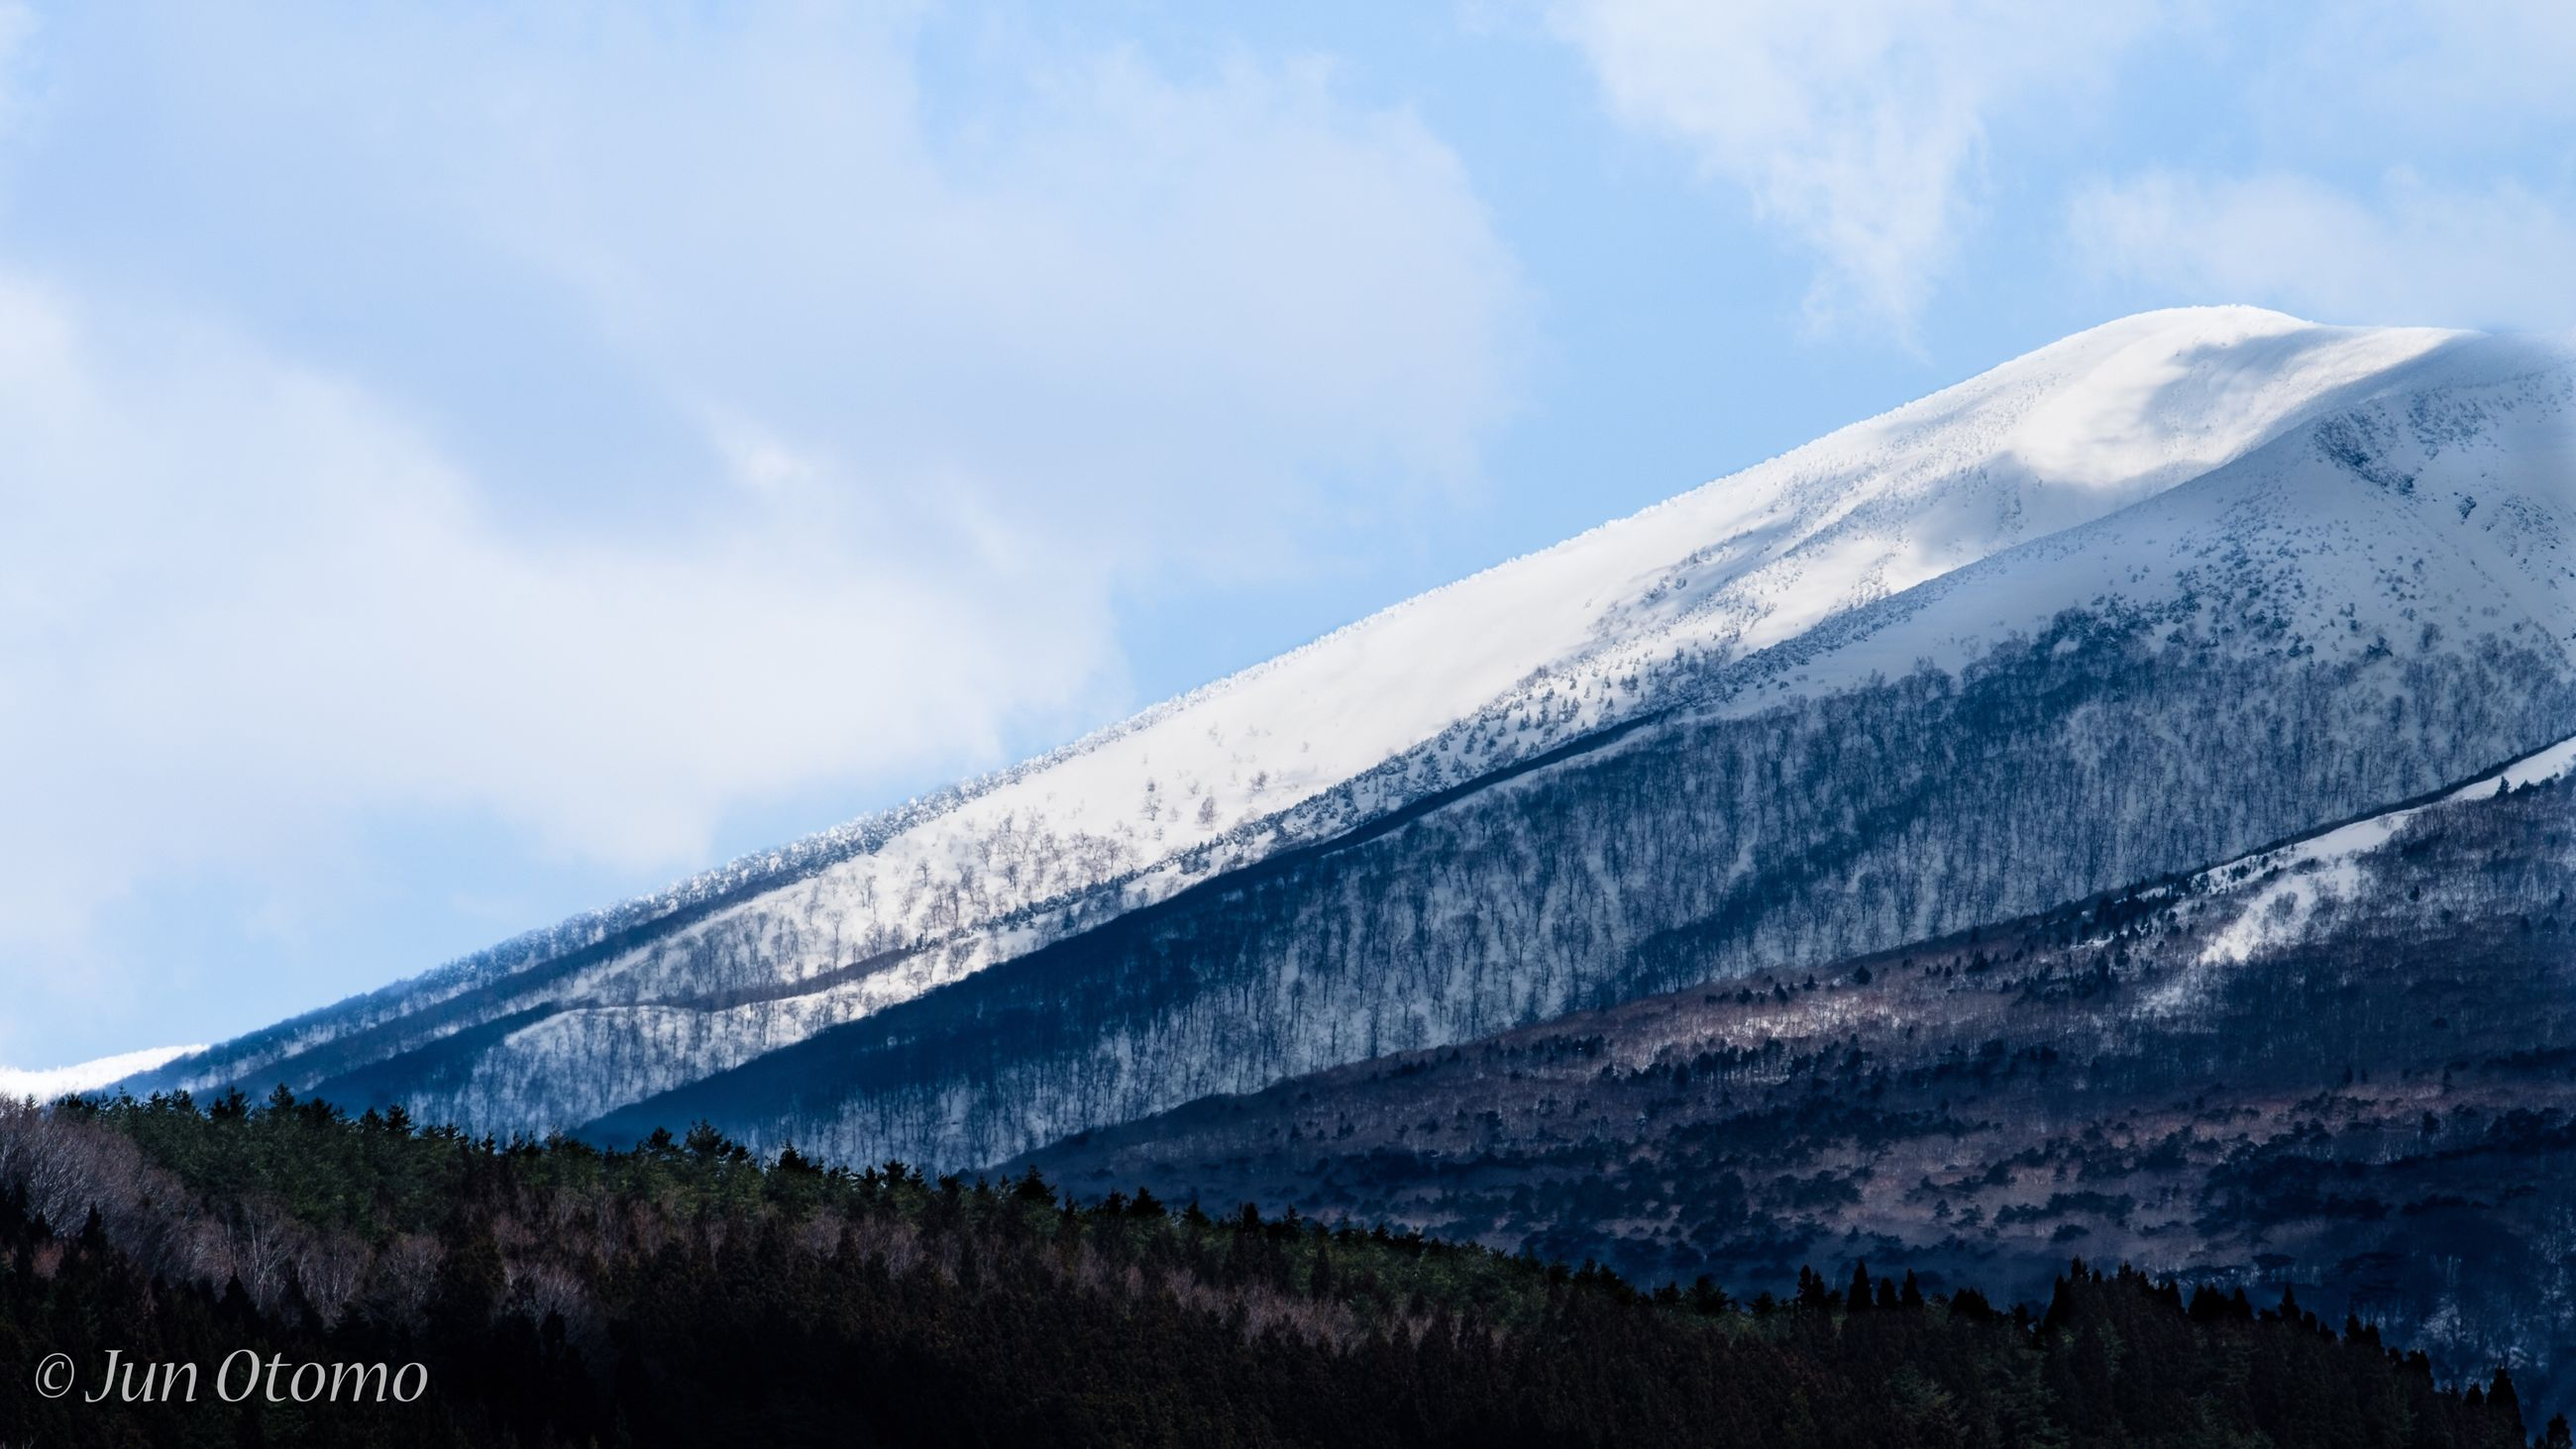 mountain, sky, snow, nature, snowcapped mountain, tranquility, cloud - sky, cold temperature, winter, outdoors, mountain range, beauty in nature, no people, scenics, day, tranquil scene